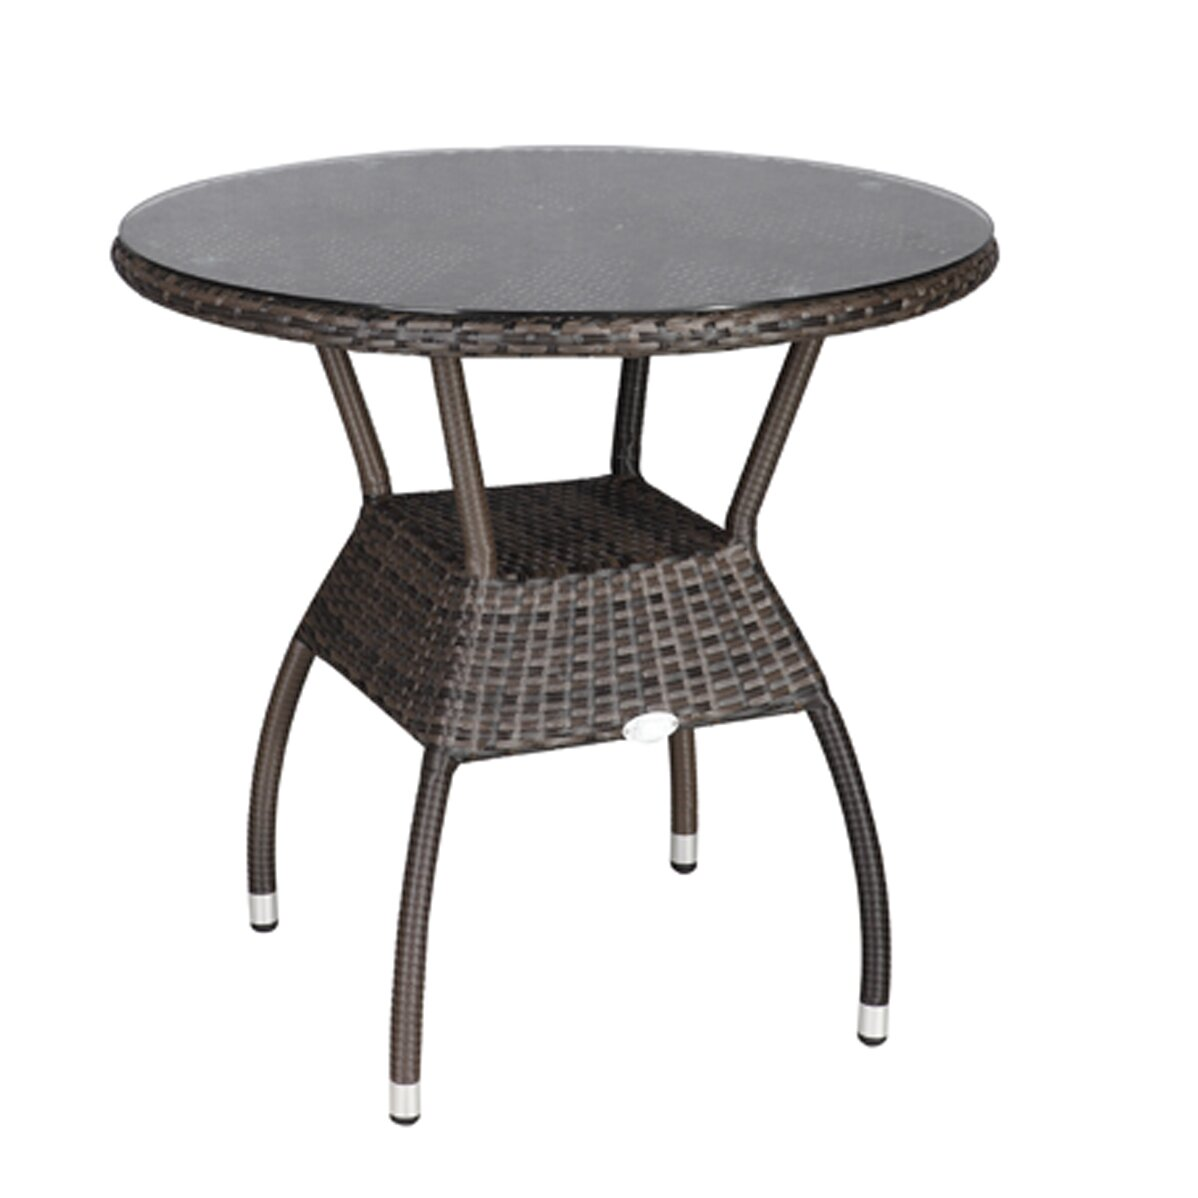 Rattan outdoor furniture brighton dining table reviews for Wayfair furniture dining tables